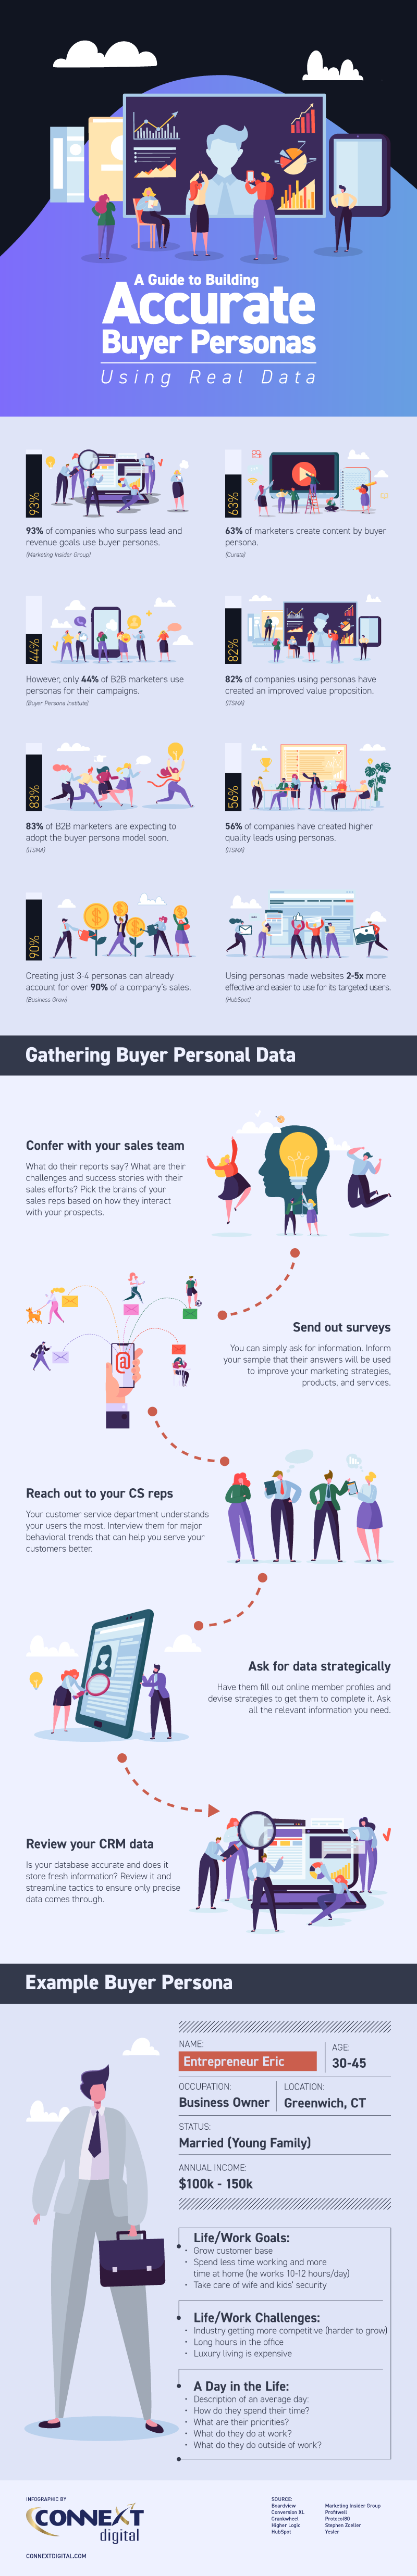 A Guide to Building Accurate Buyer Personas Using Real Data-Infographic